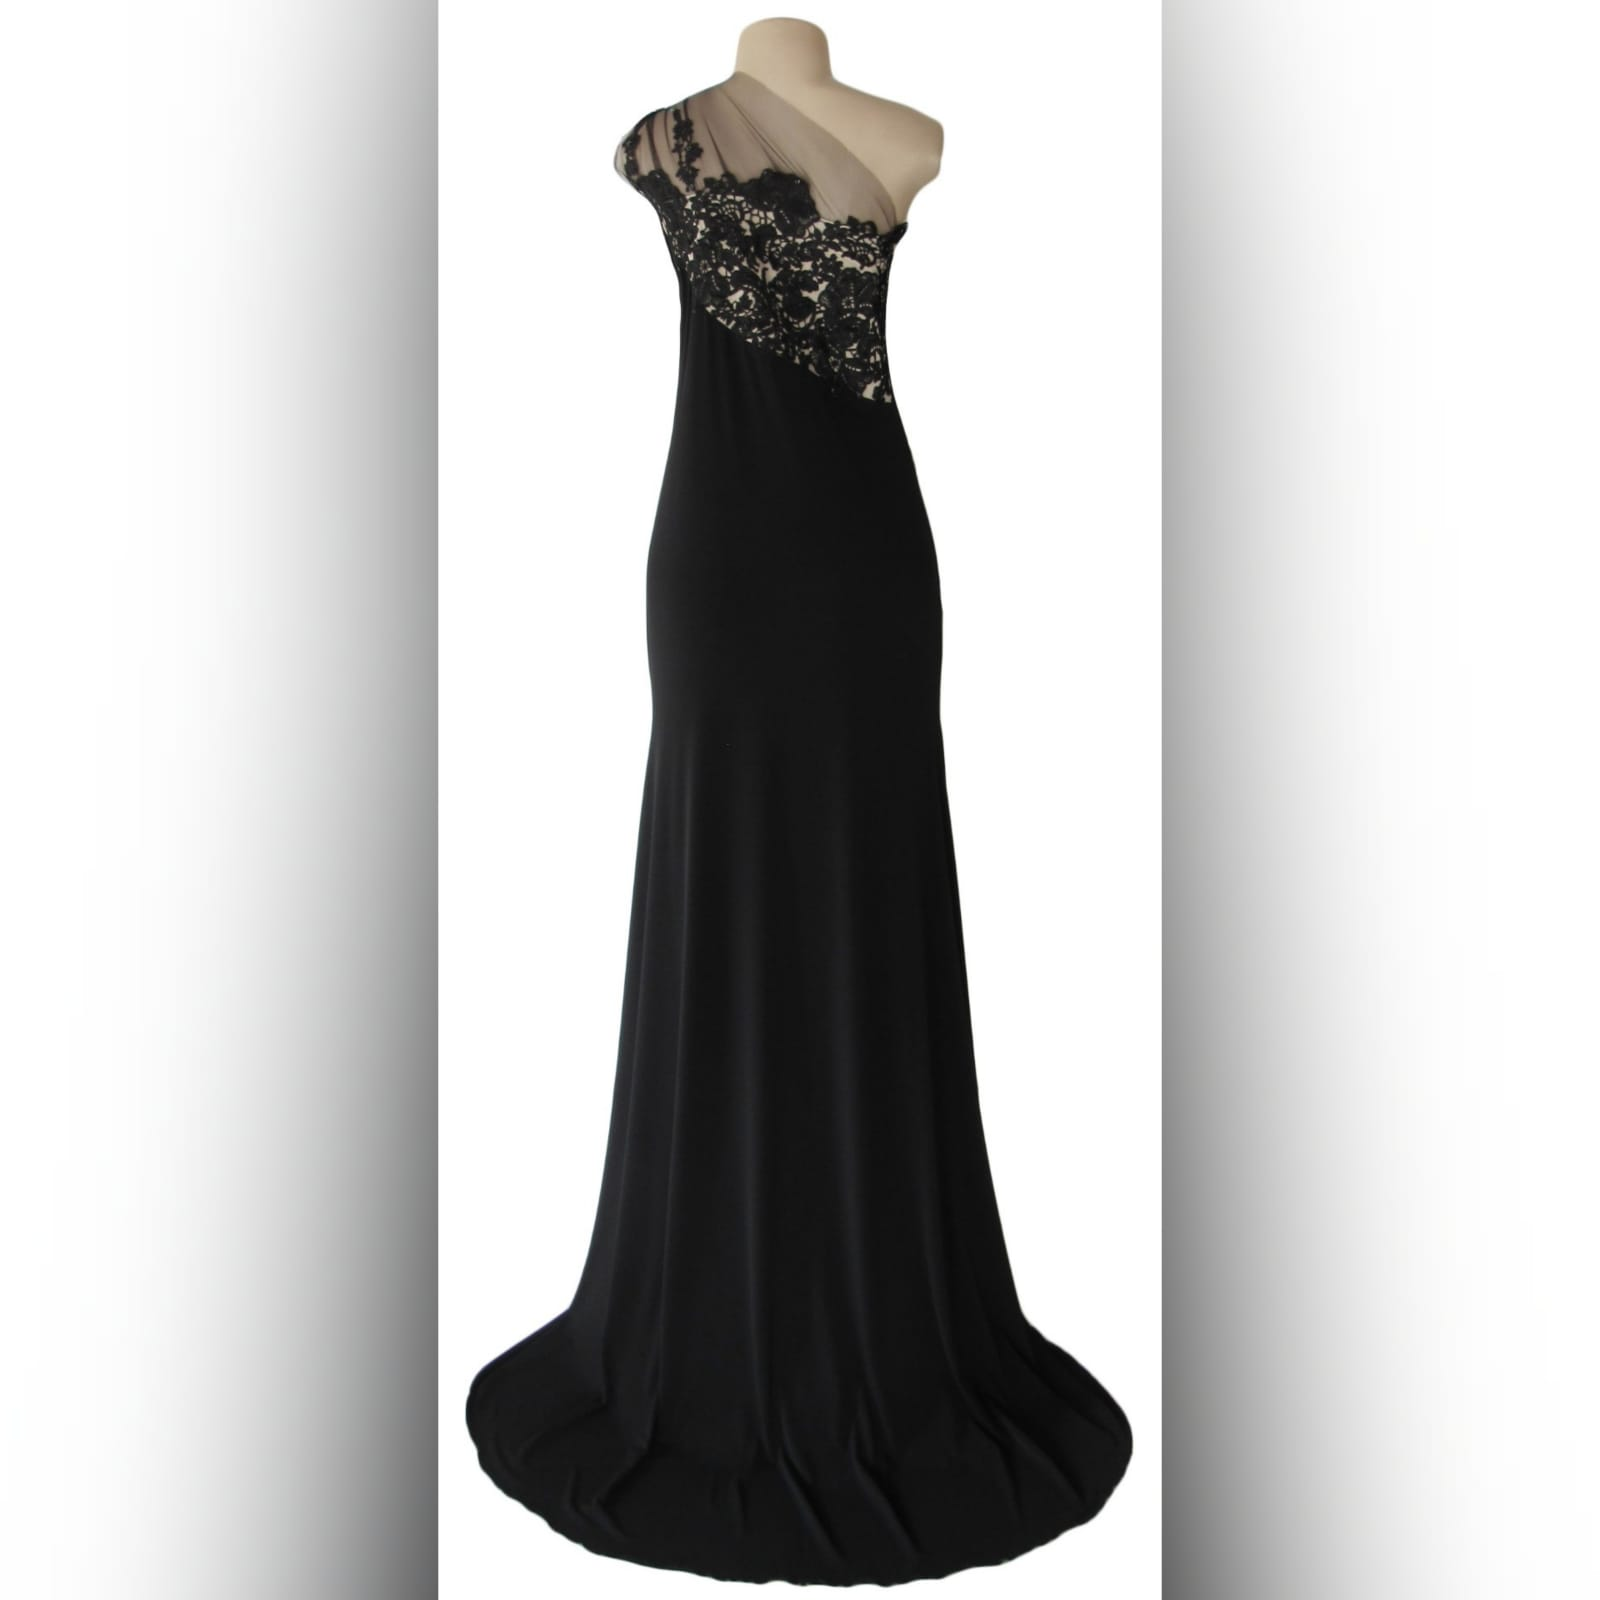 Long black evening dress with lace 2 single shoulder, lace bodice long black evening dress. With a slit and a train